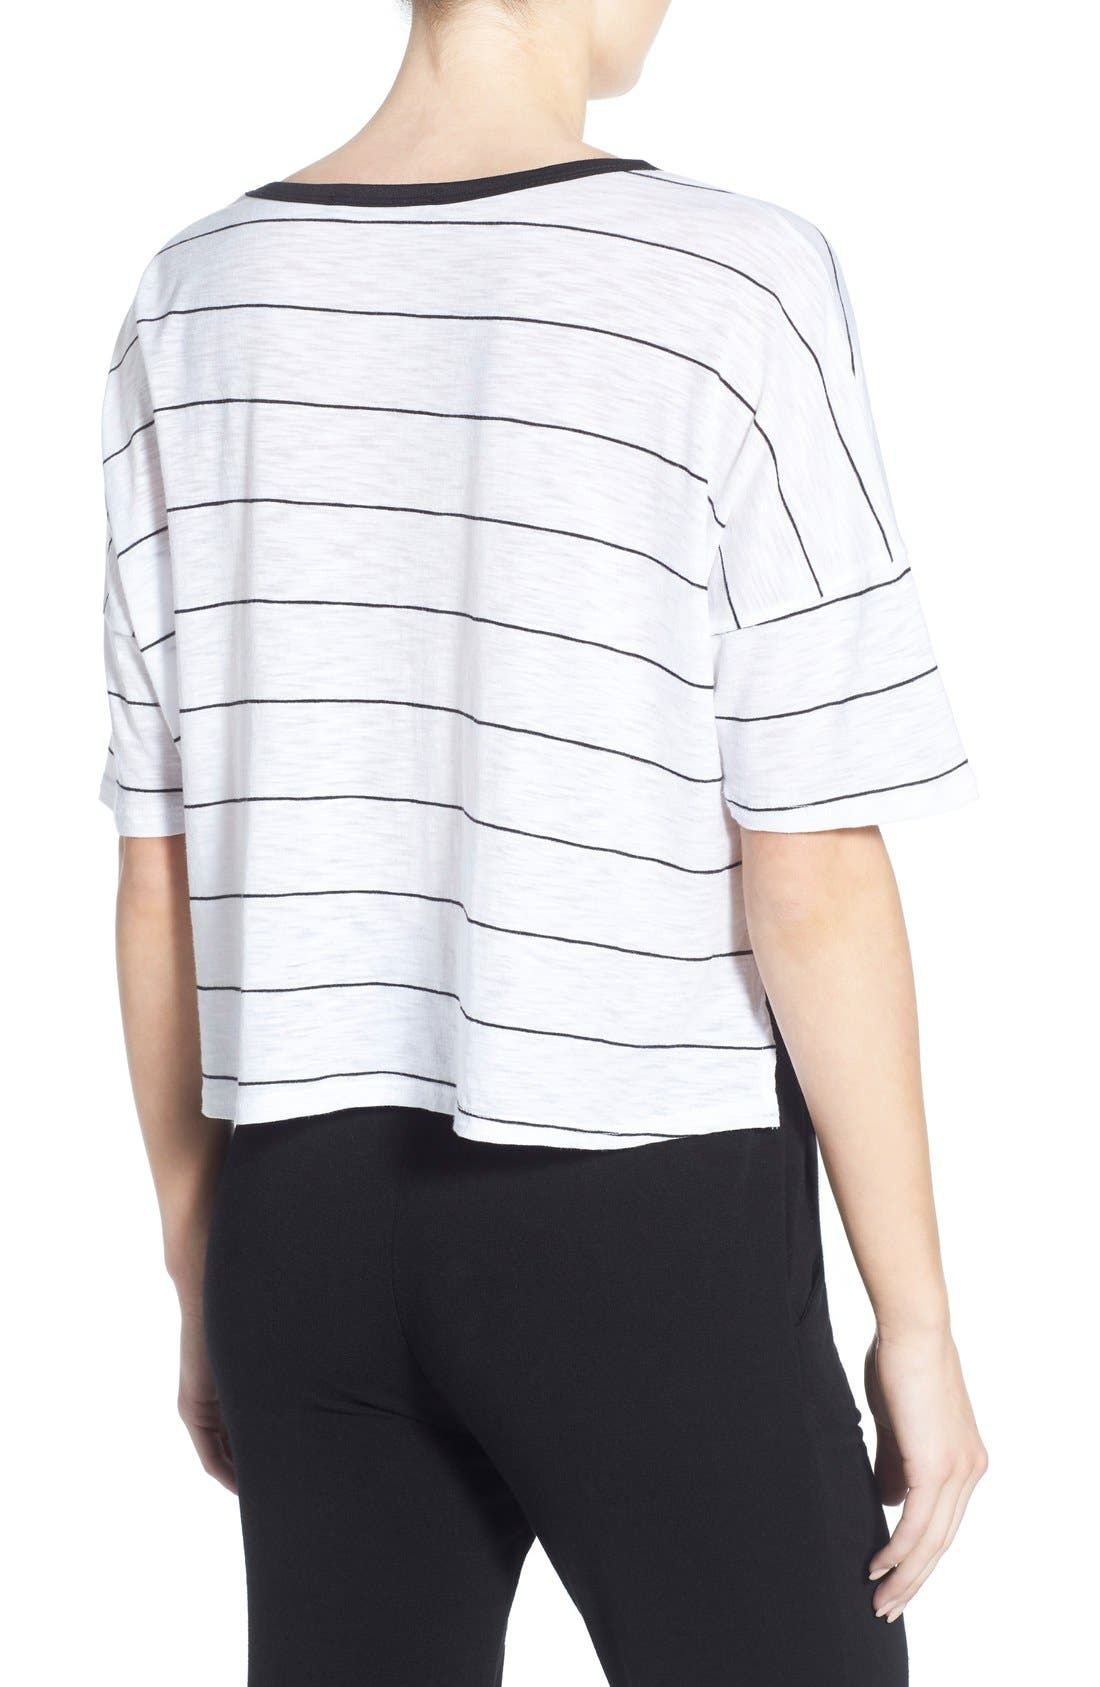 Alternate Image 2  - Michelle by Comune Stripe Crop Tee